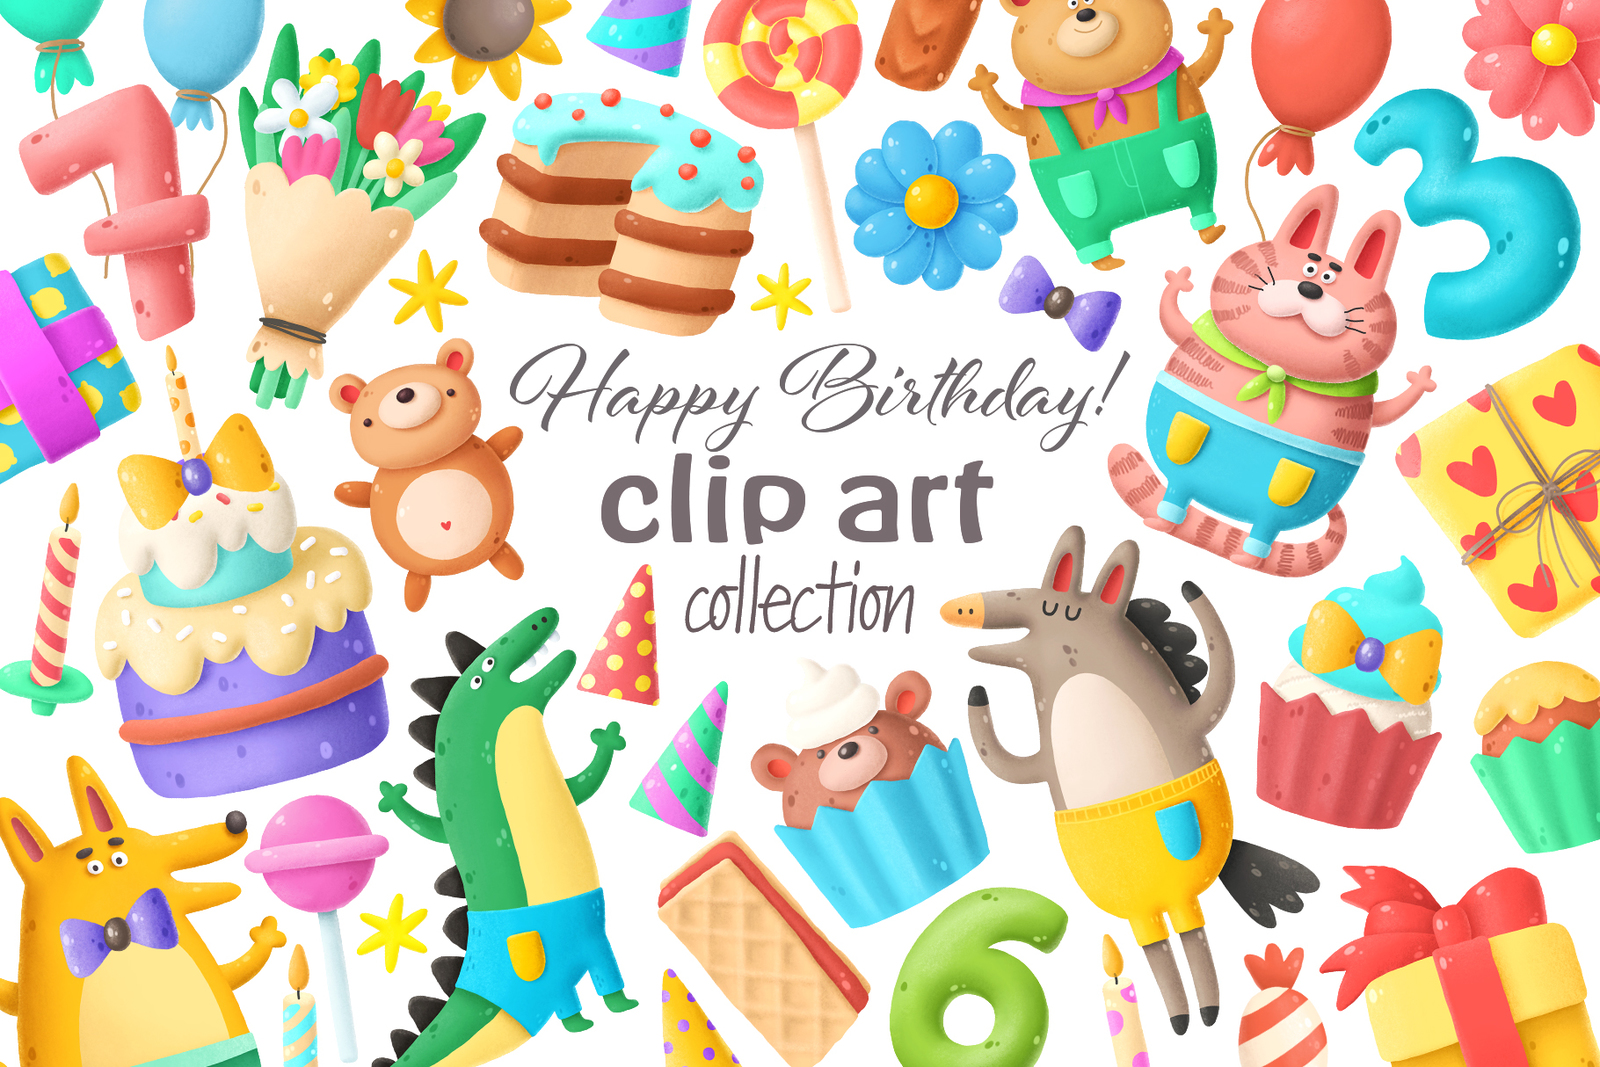 Birthday clip art collection